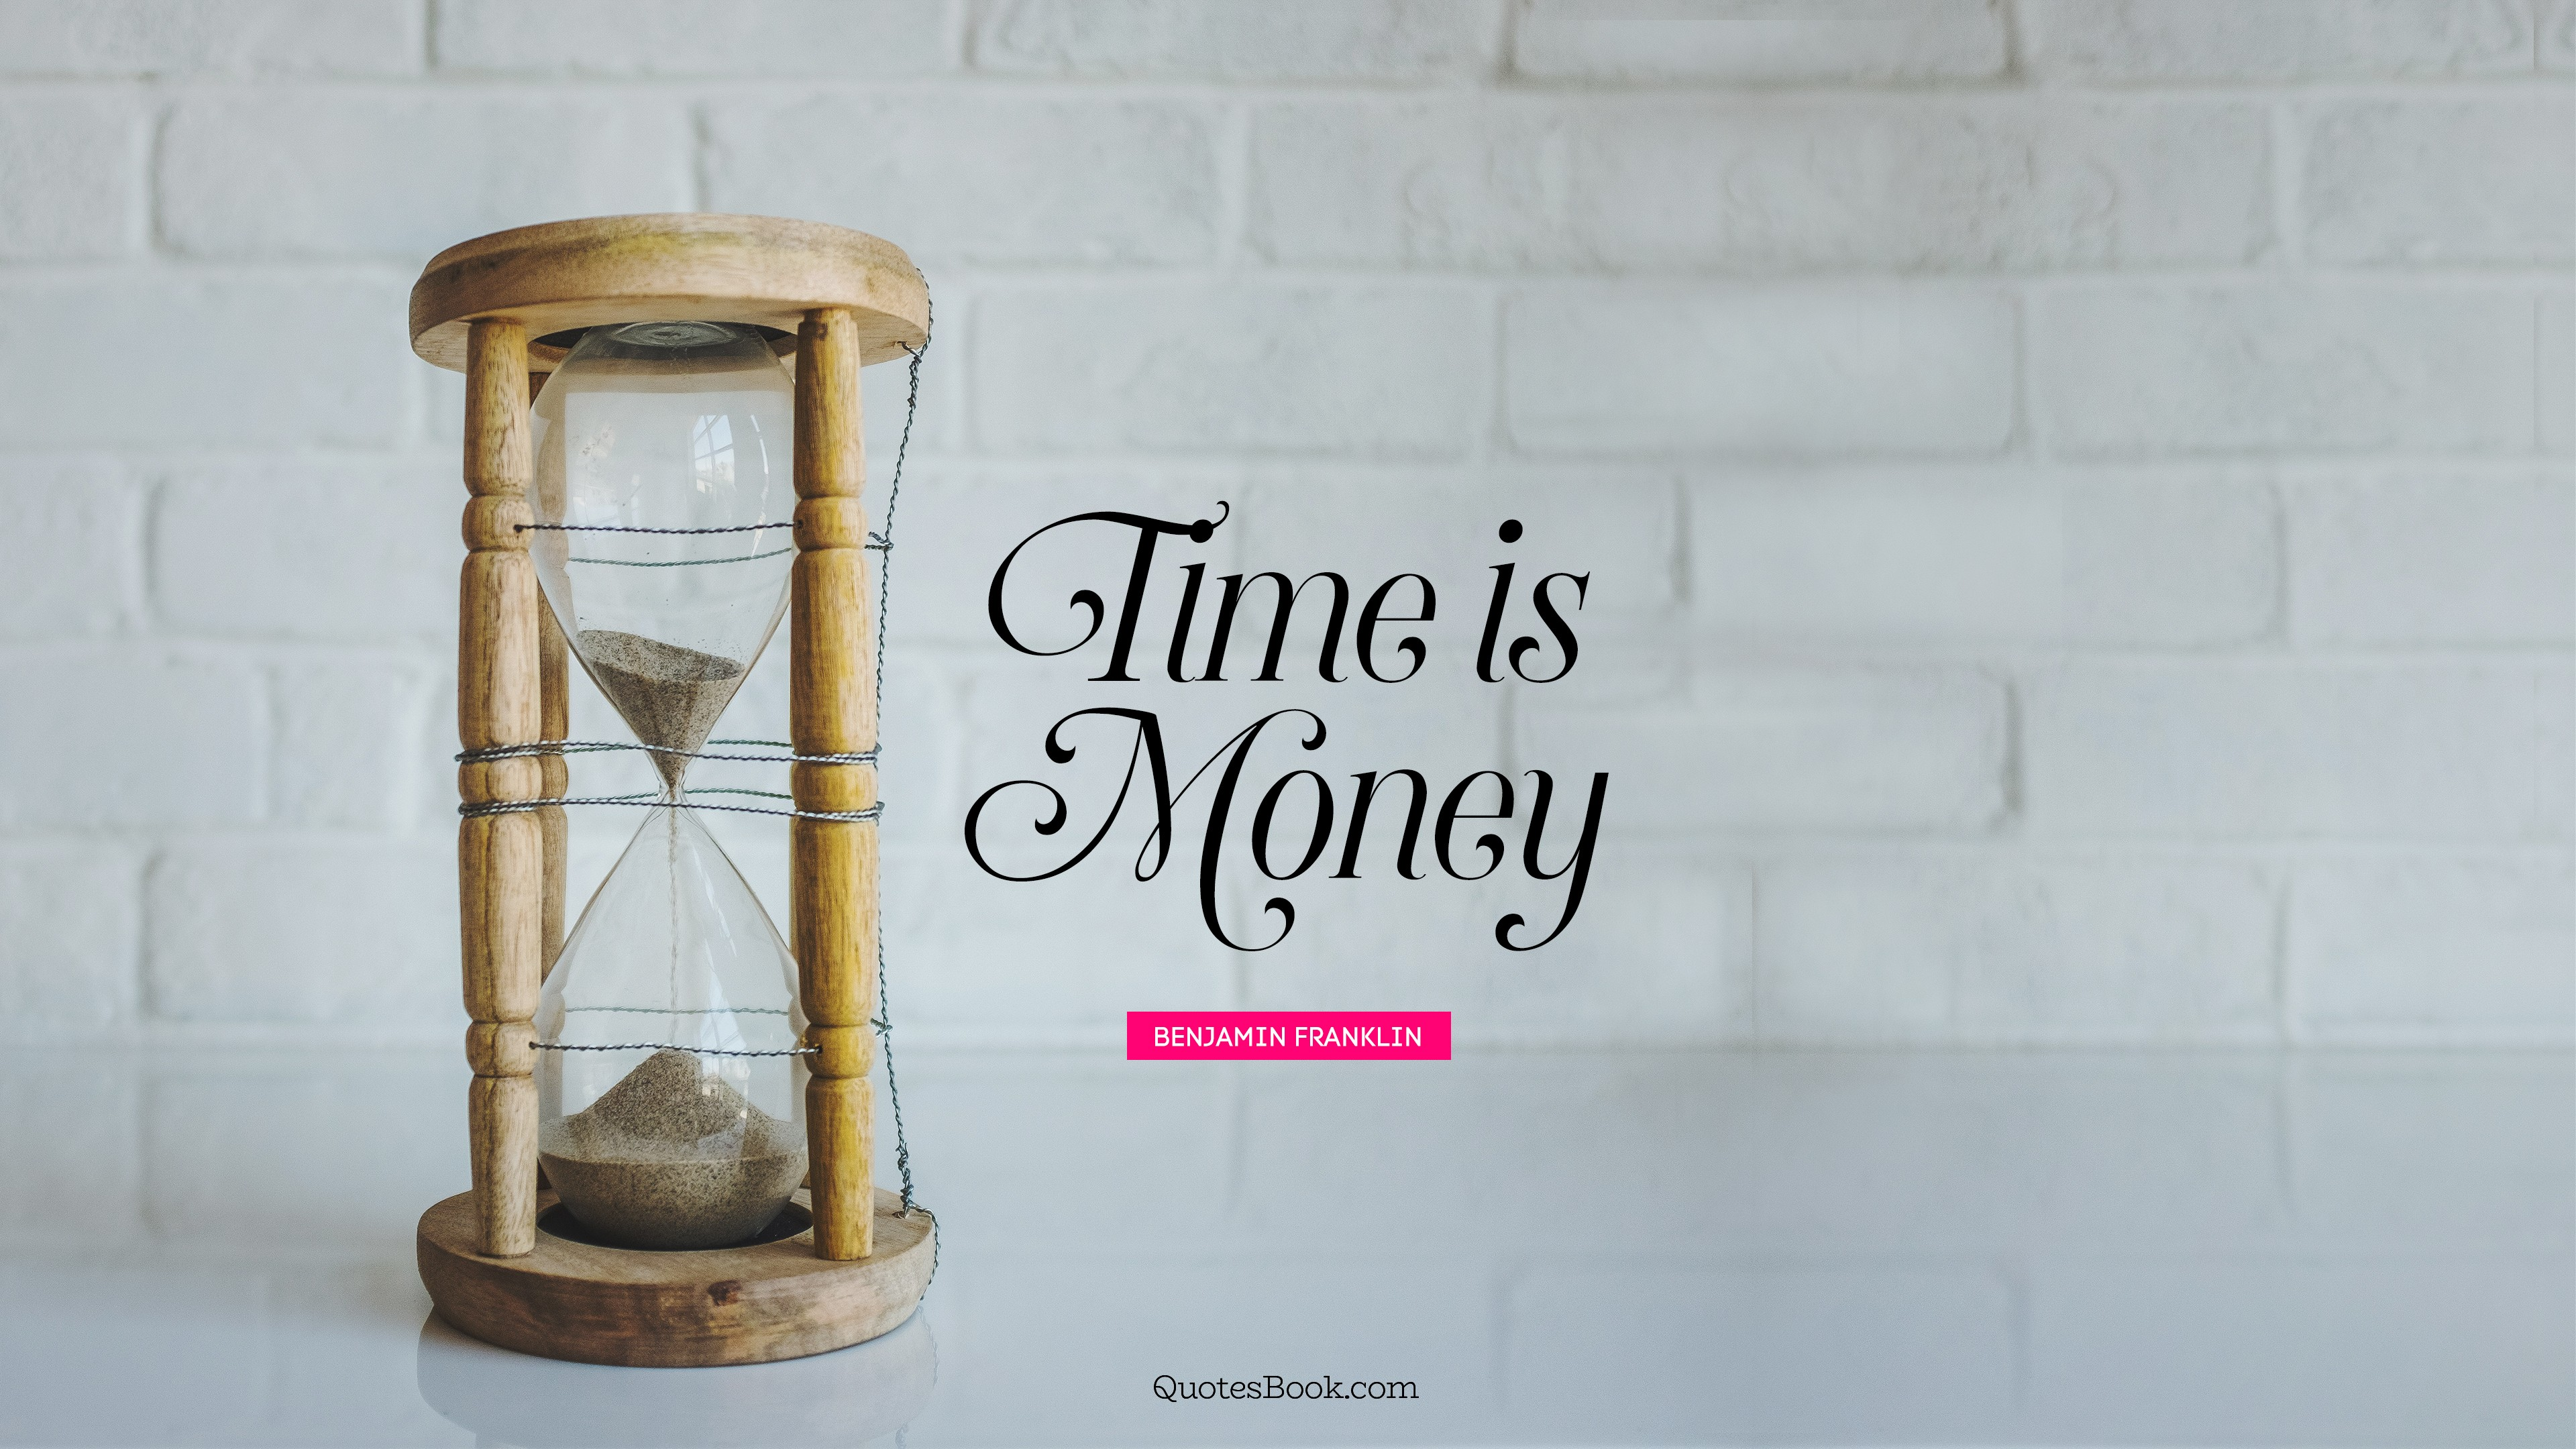 Time is money  - Quote by Benjamin Franklin - QuotesBook